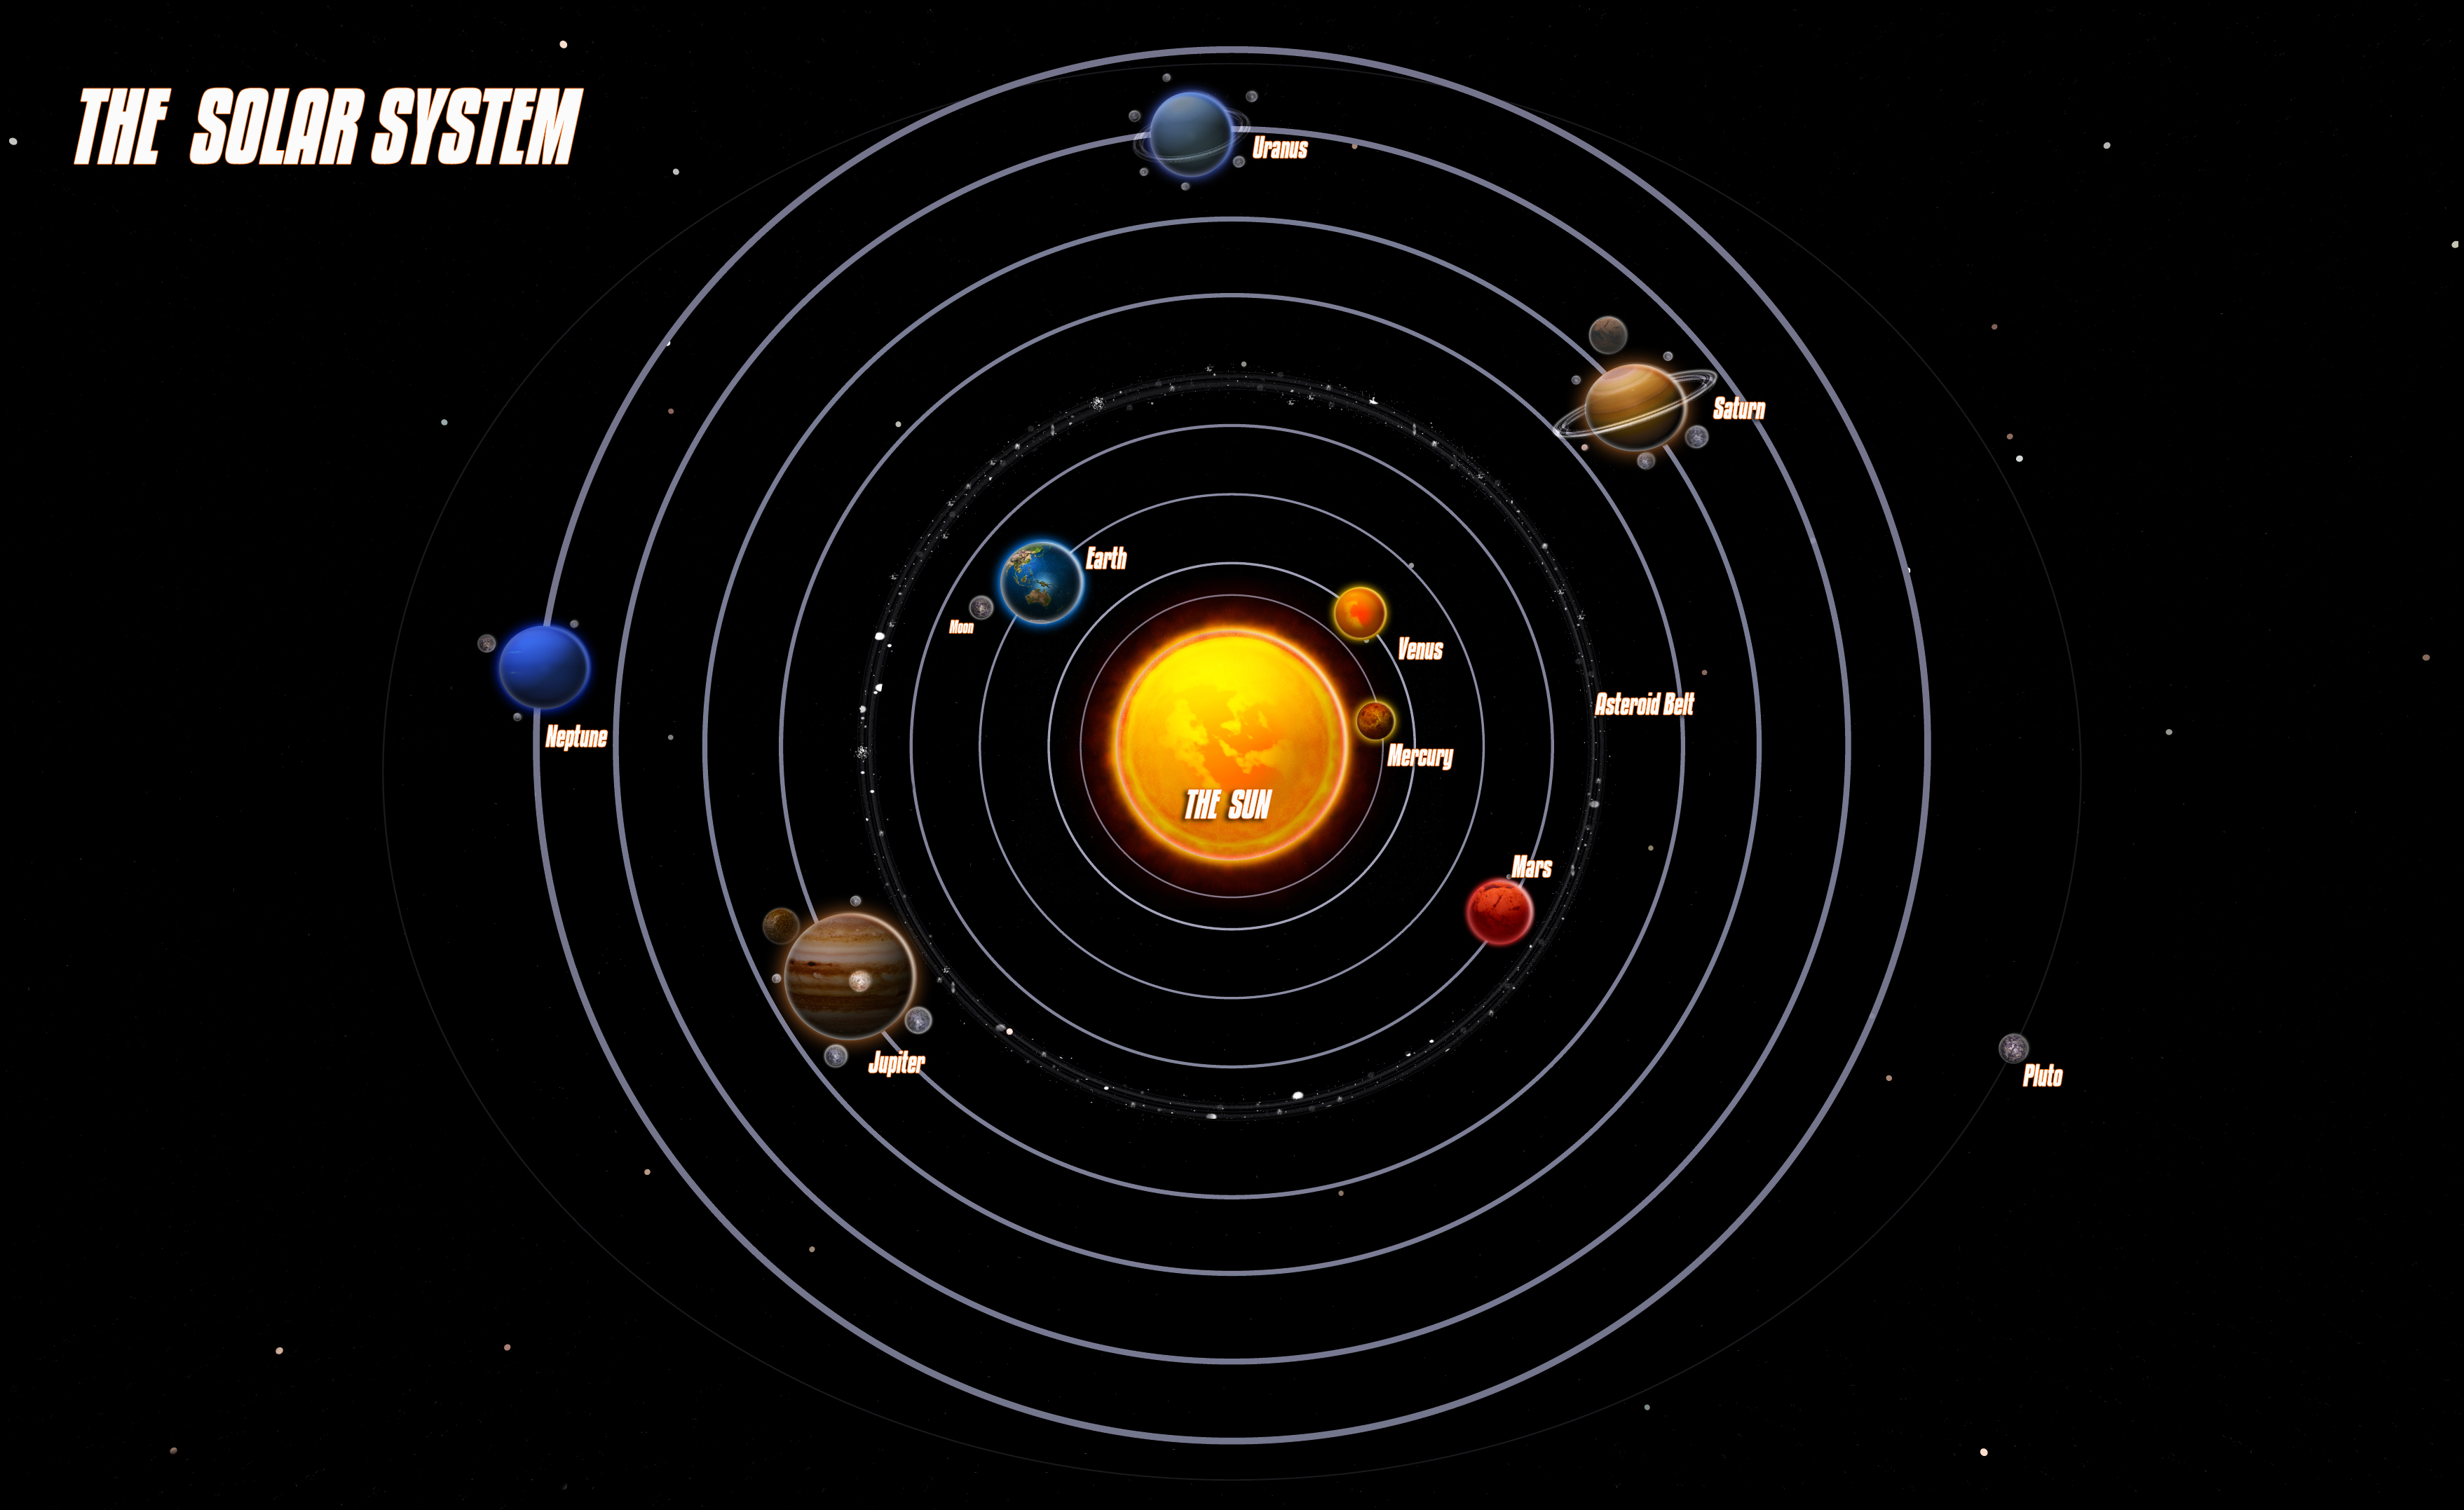 info about the solar system - photo #46